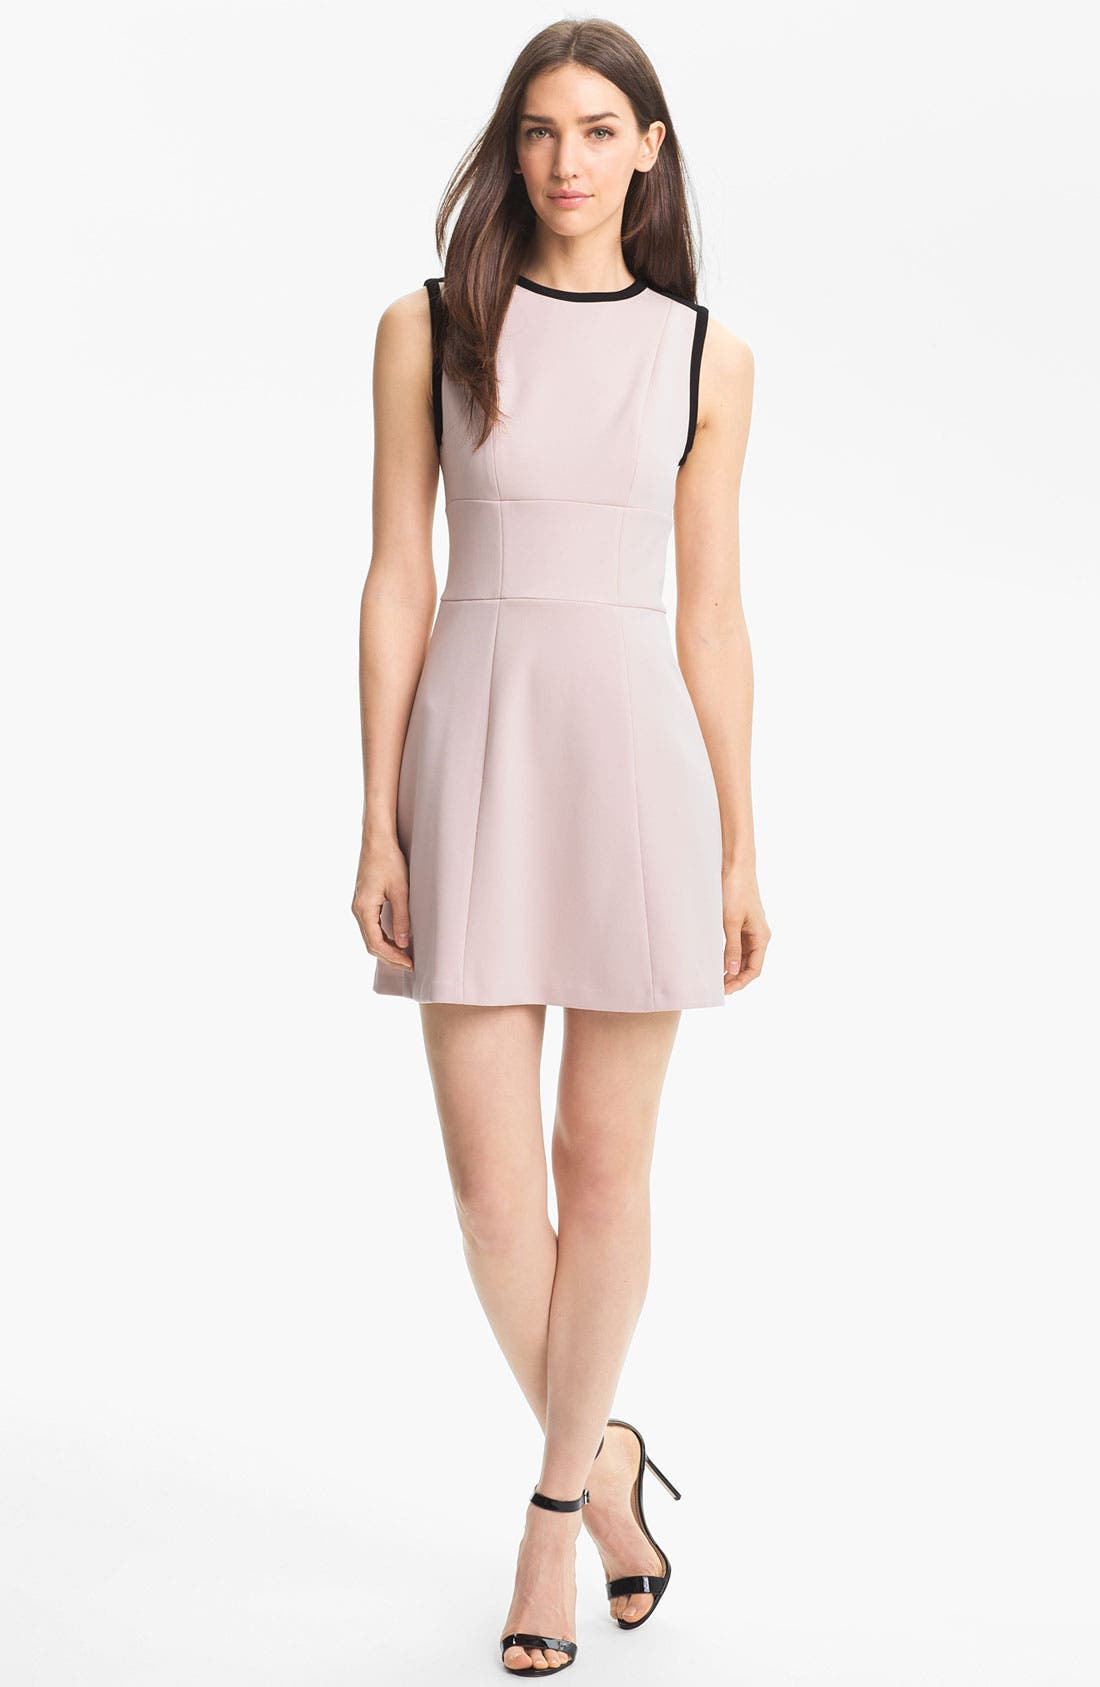 Alternate Image 1 Selected - Ted Baker London Stretch A-Line Dress (Online Only)